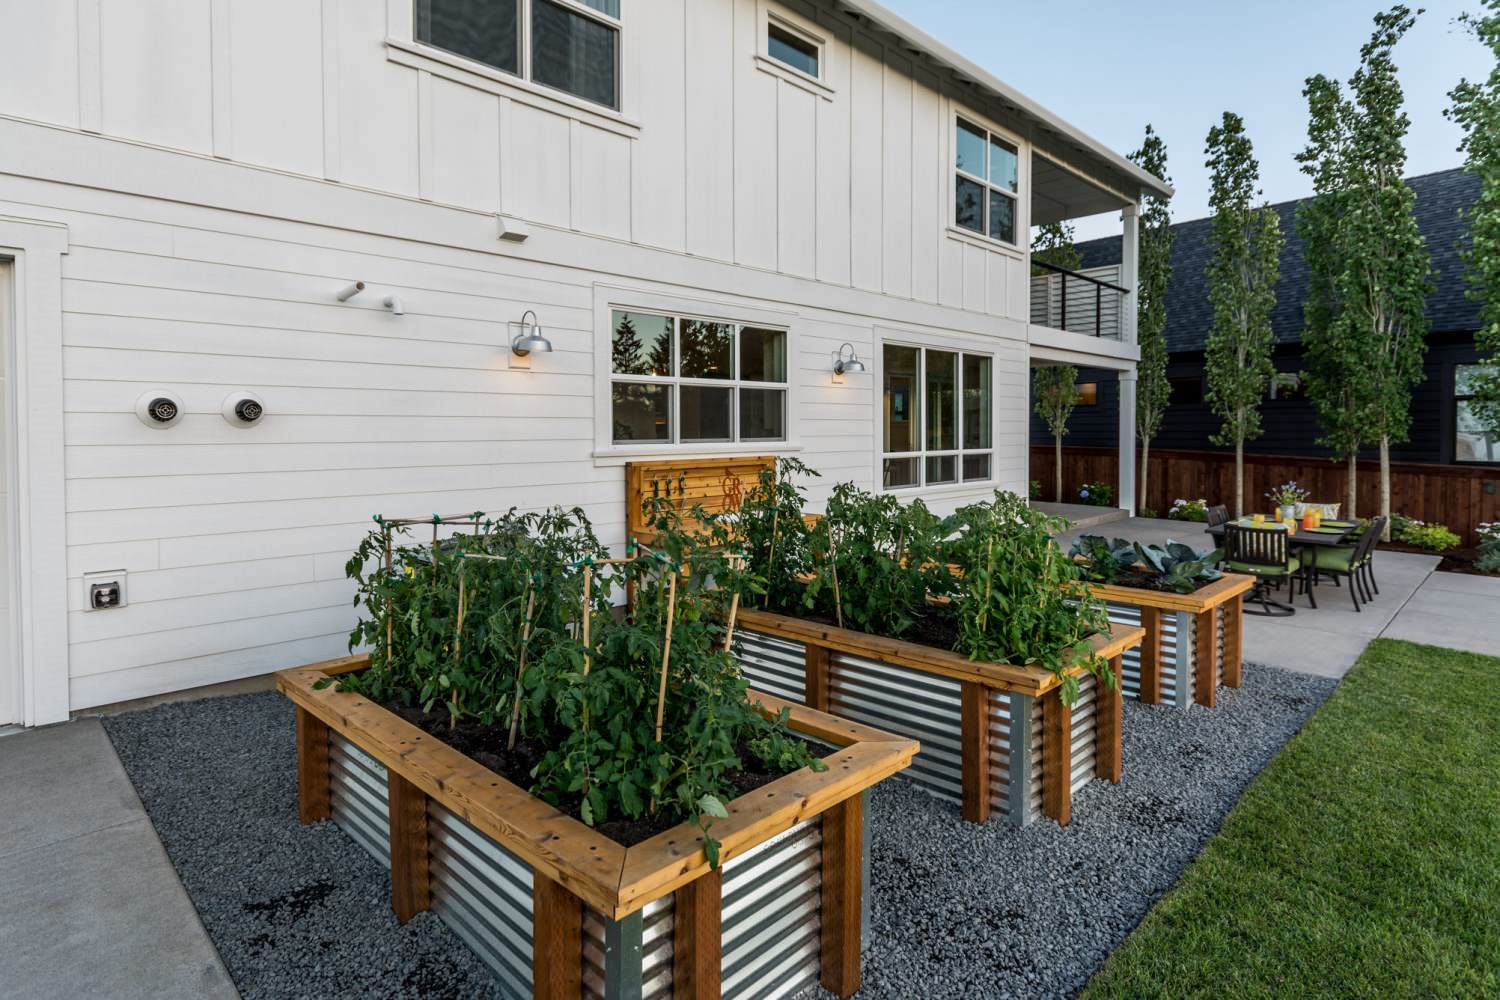 75 Beautiful Farmhouse Landscaping Pictures Ideas March 2021 Houzz